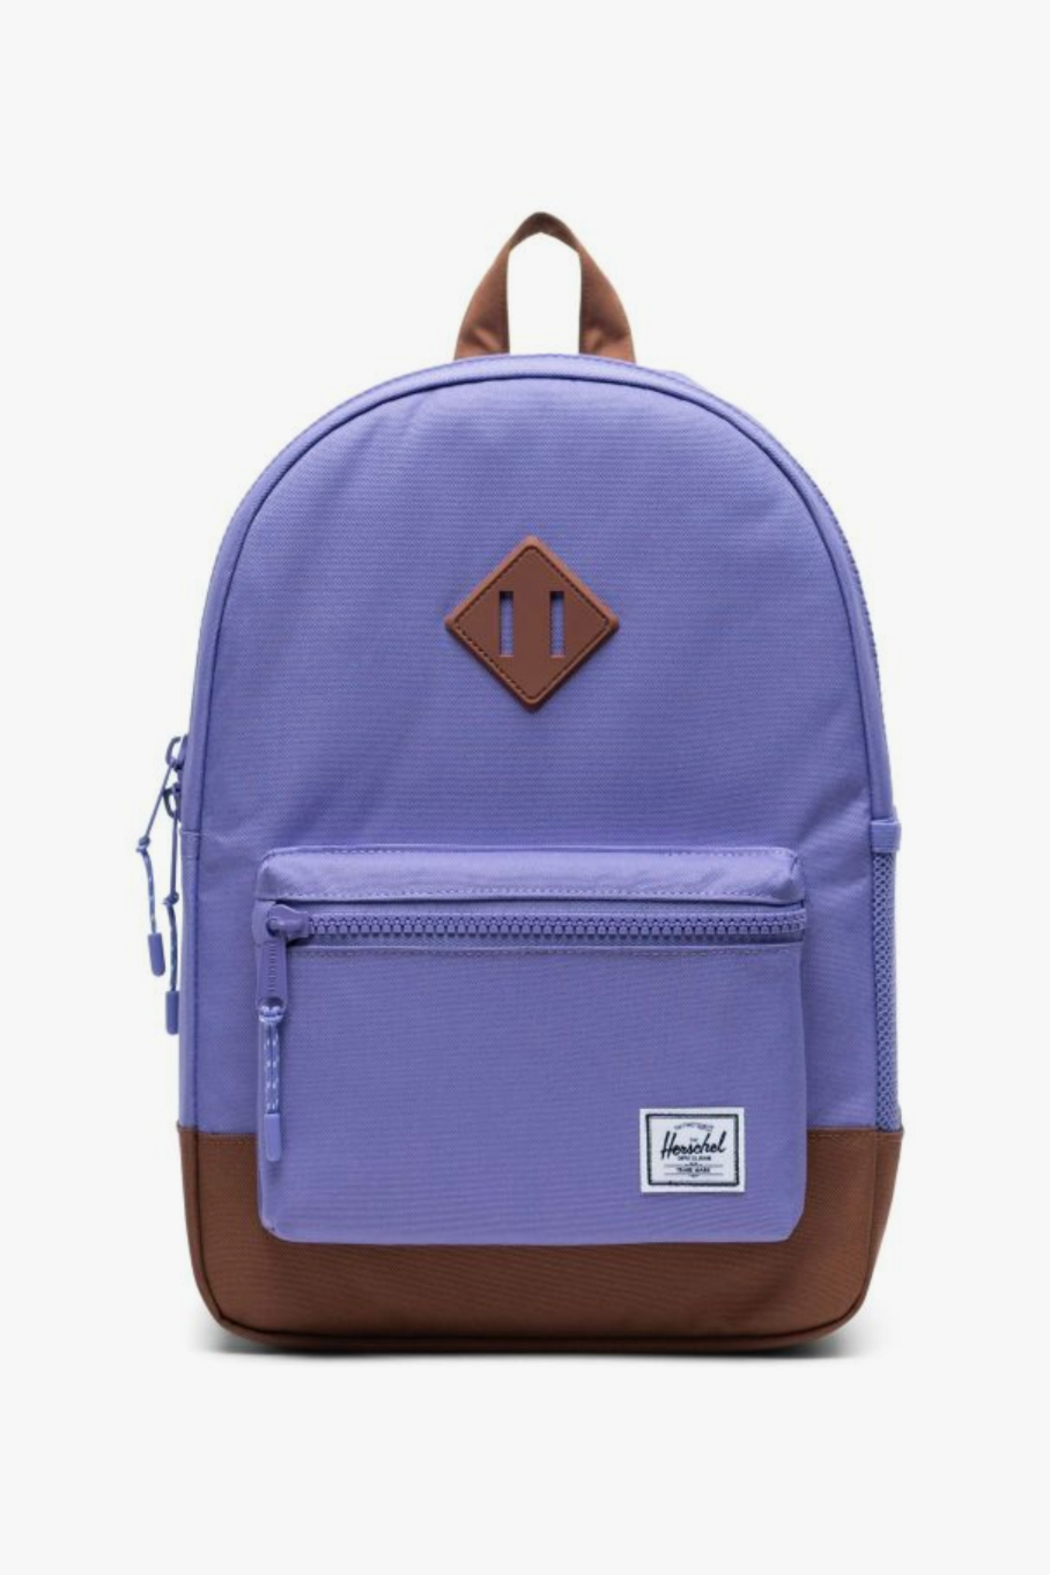 Herschel Supply Co. Heritage Backpack XL Youth - Main Image